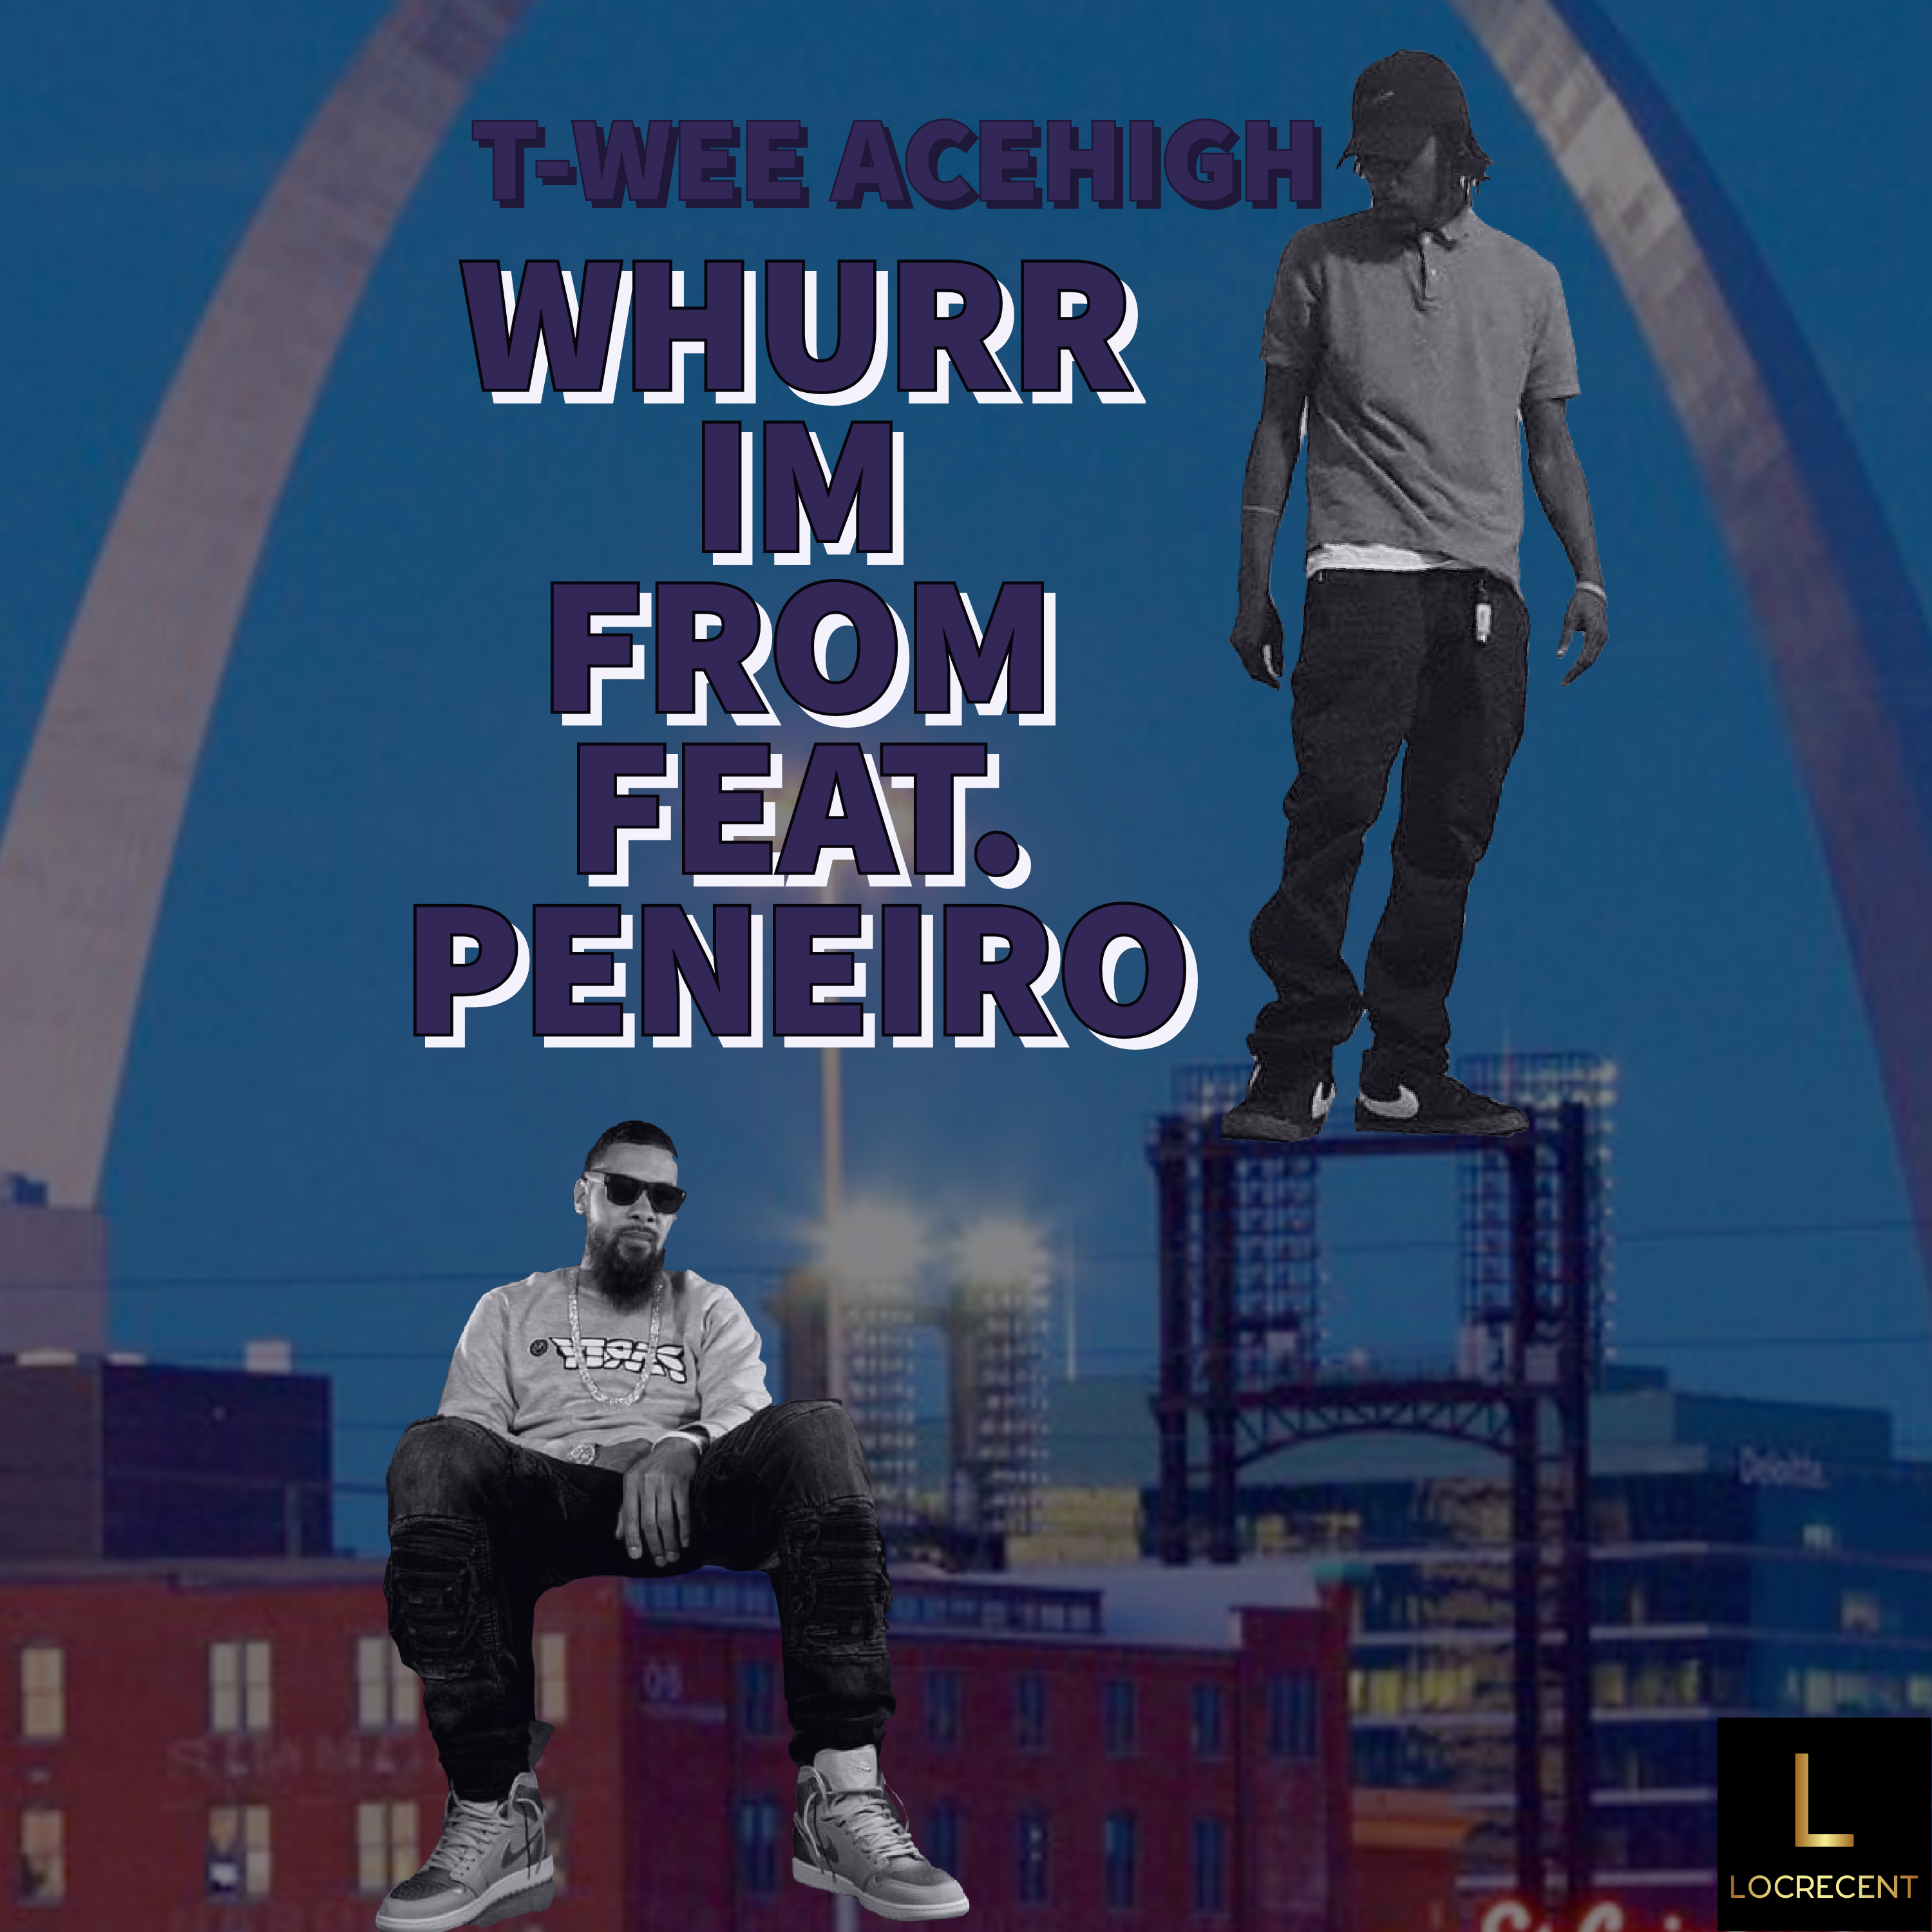 Art for Whurr Im From feat. Peneiro by T-wee Acehigh